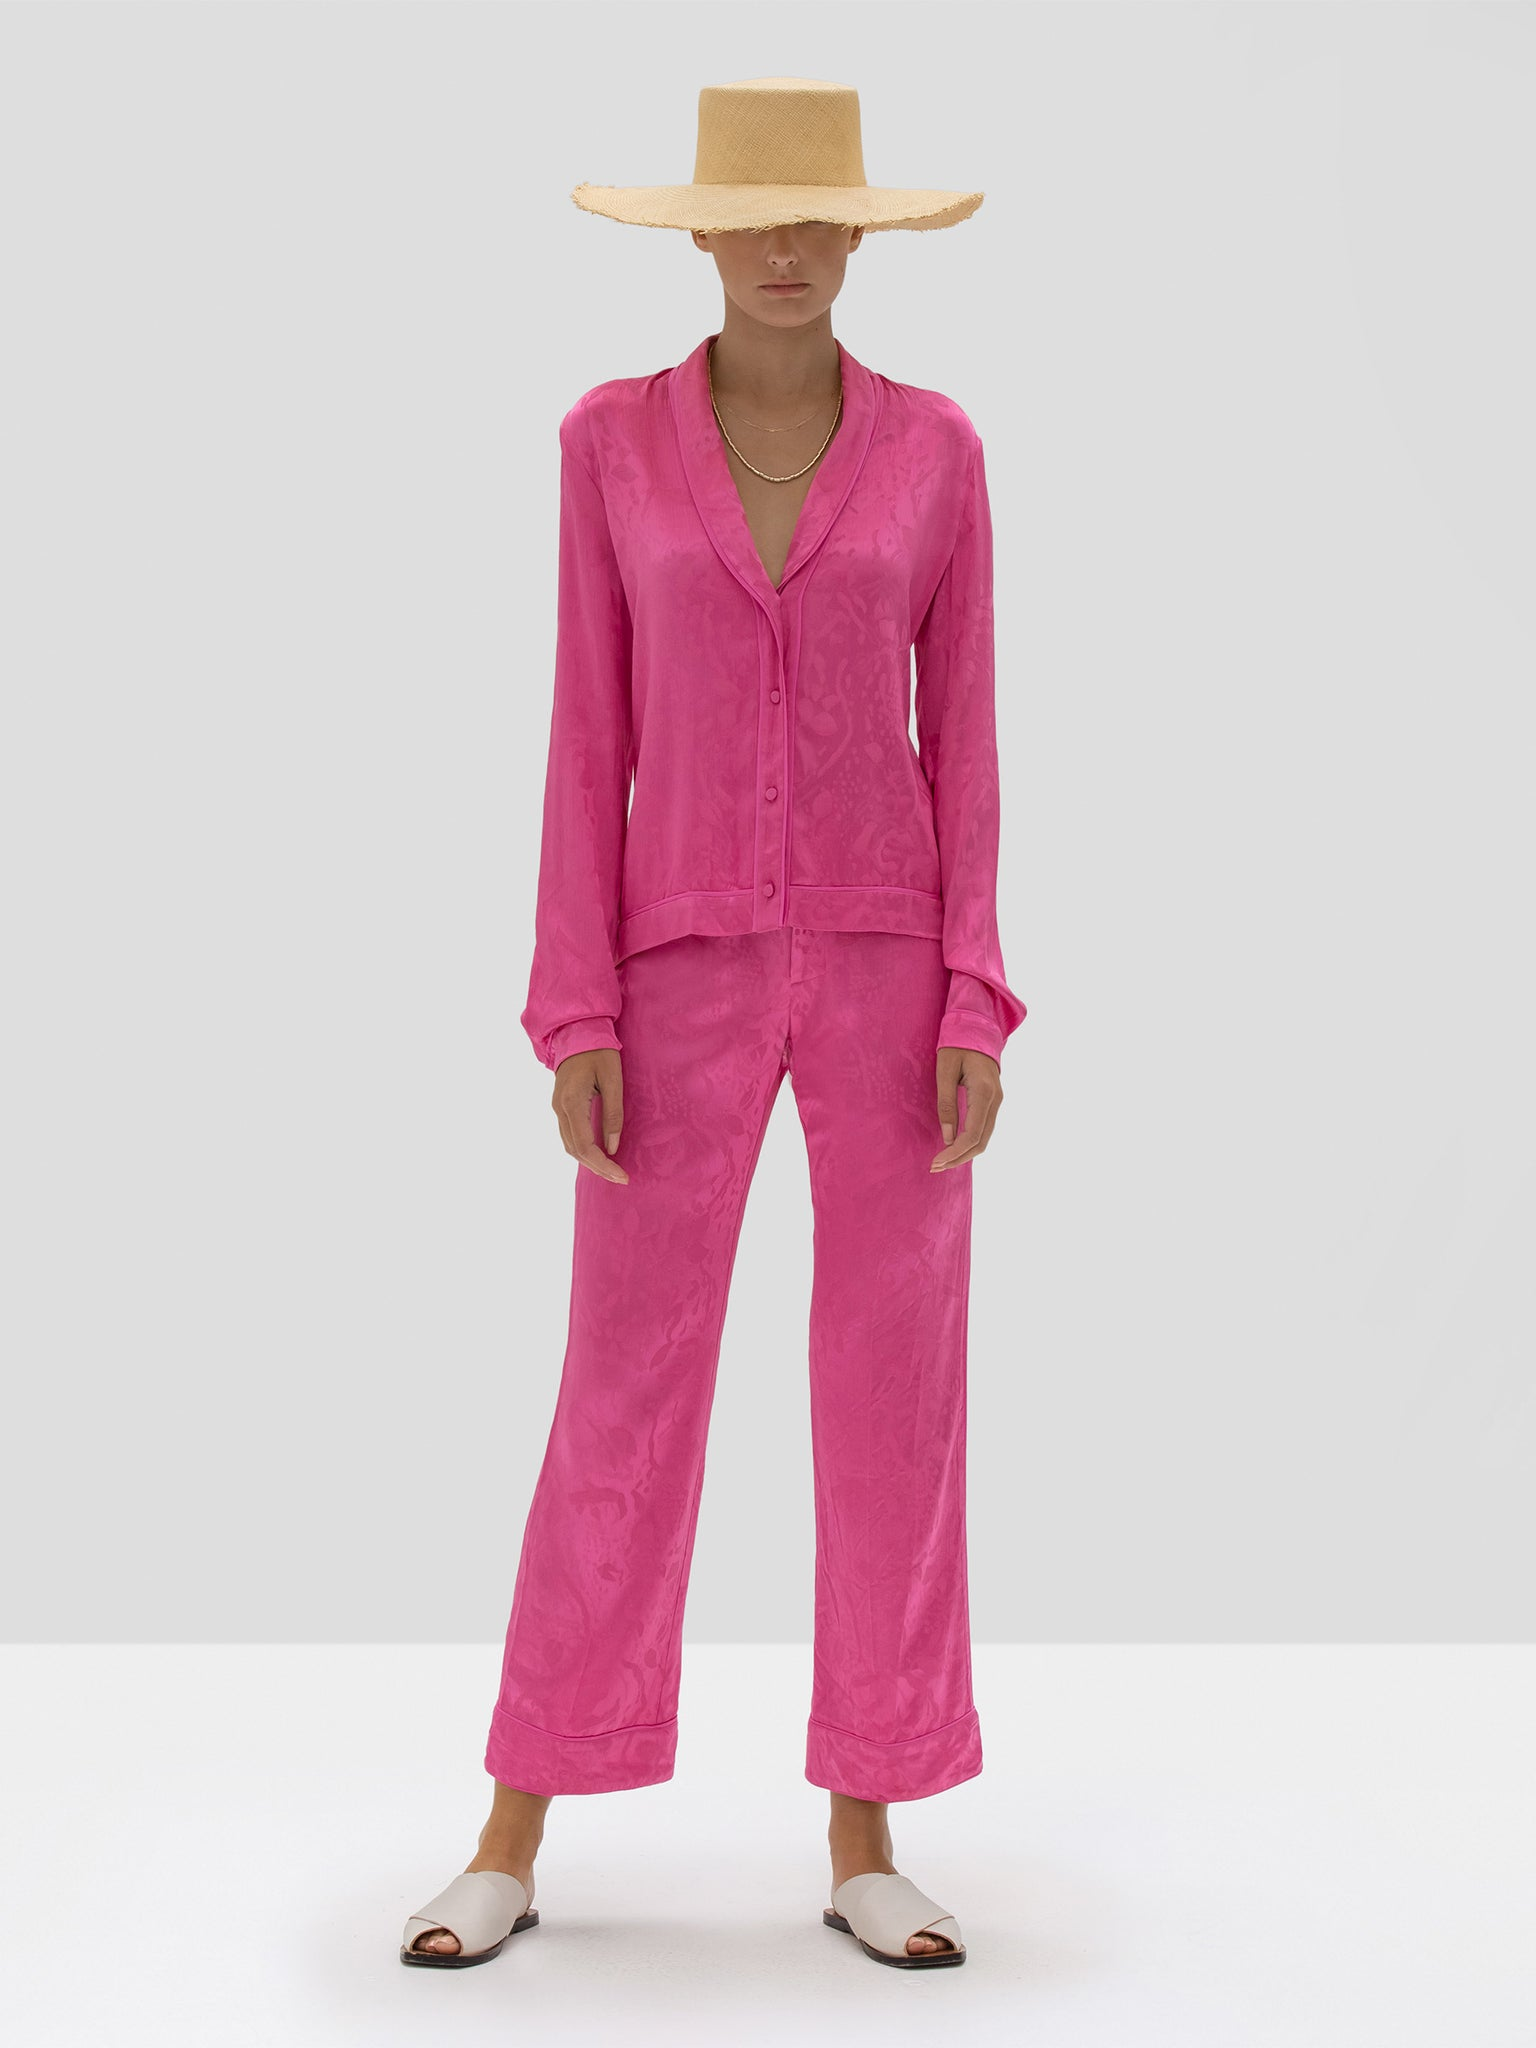 Alexis Cadi Top and Desna Pant in Vivid Fuschia from Spring Summer 2020